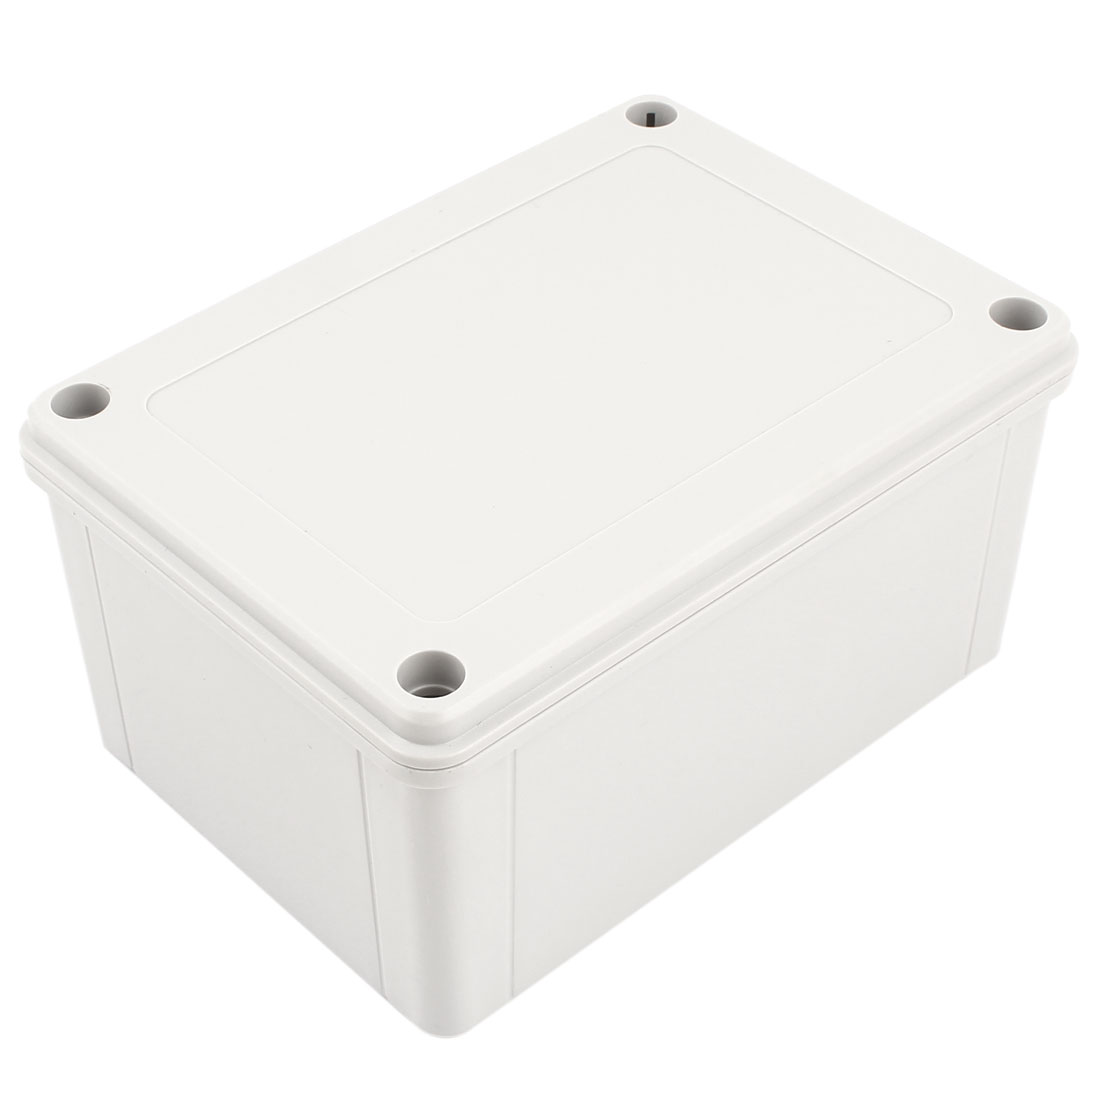 180mm x 130mm x 90mm Waterproof Plastic DIY Junction Box Power Protection Case